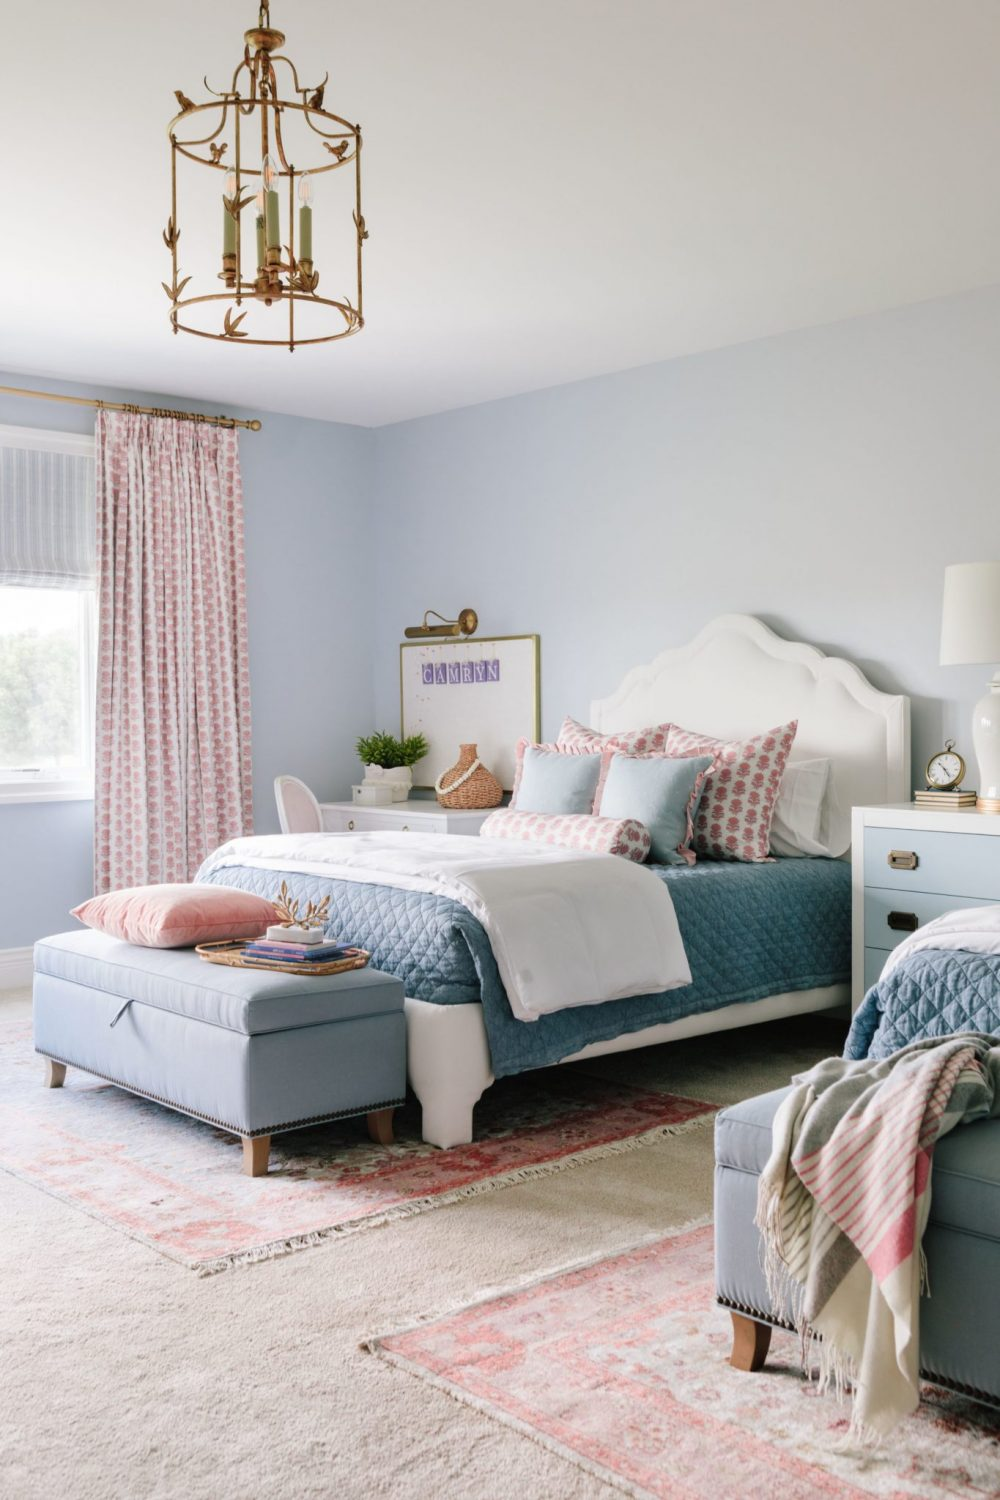 From Junk Room To Beautiful Bedroom The Big Reveal: House Beautiful Feature: Middleton, Wisconsin Project Pt